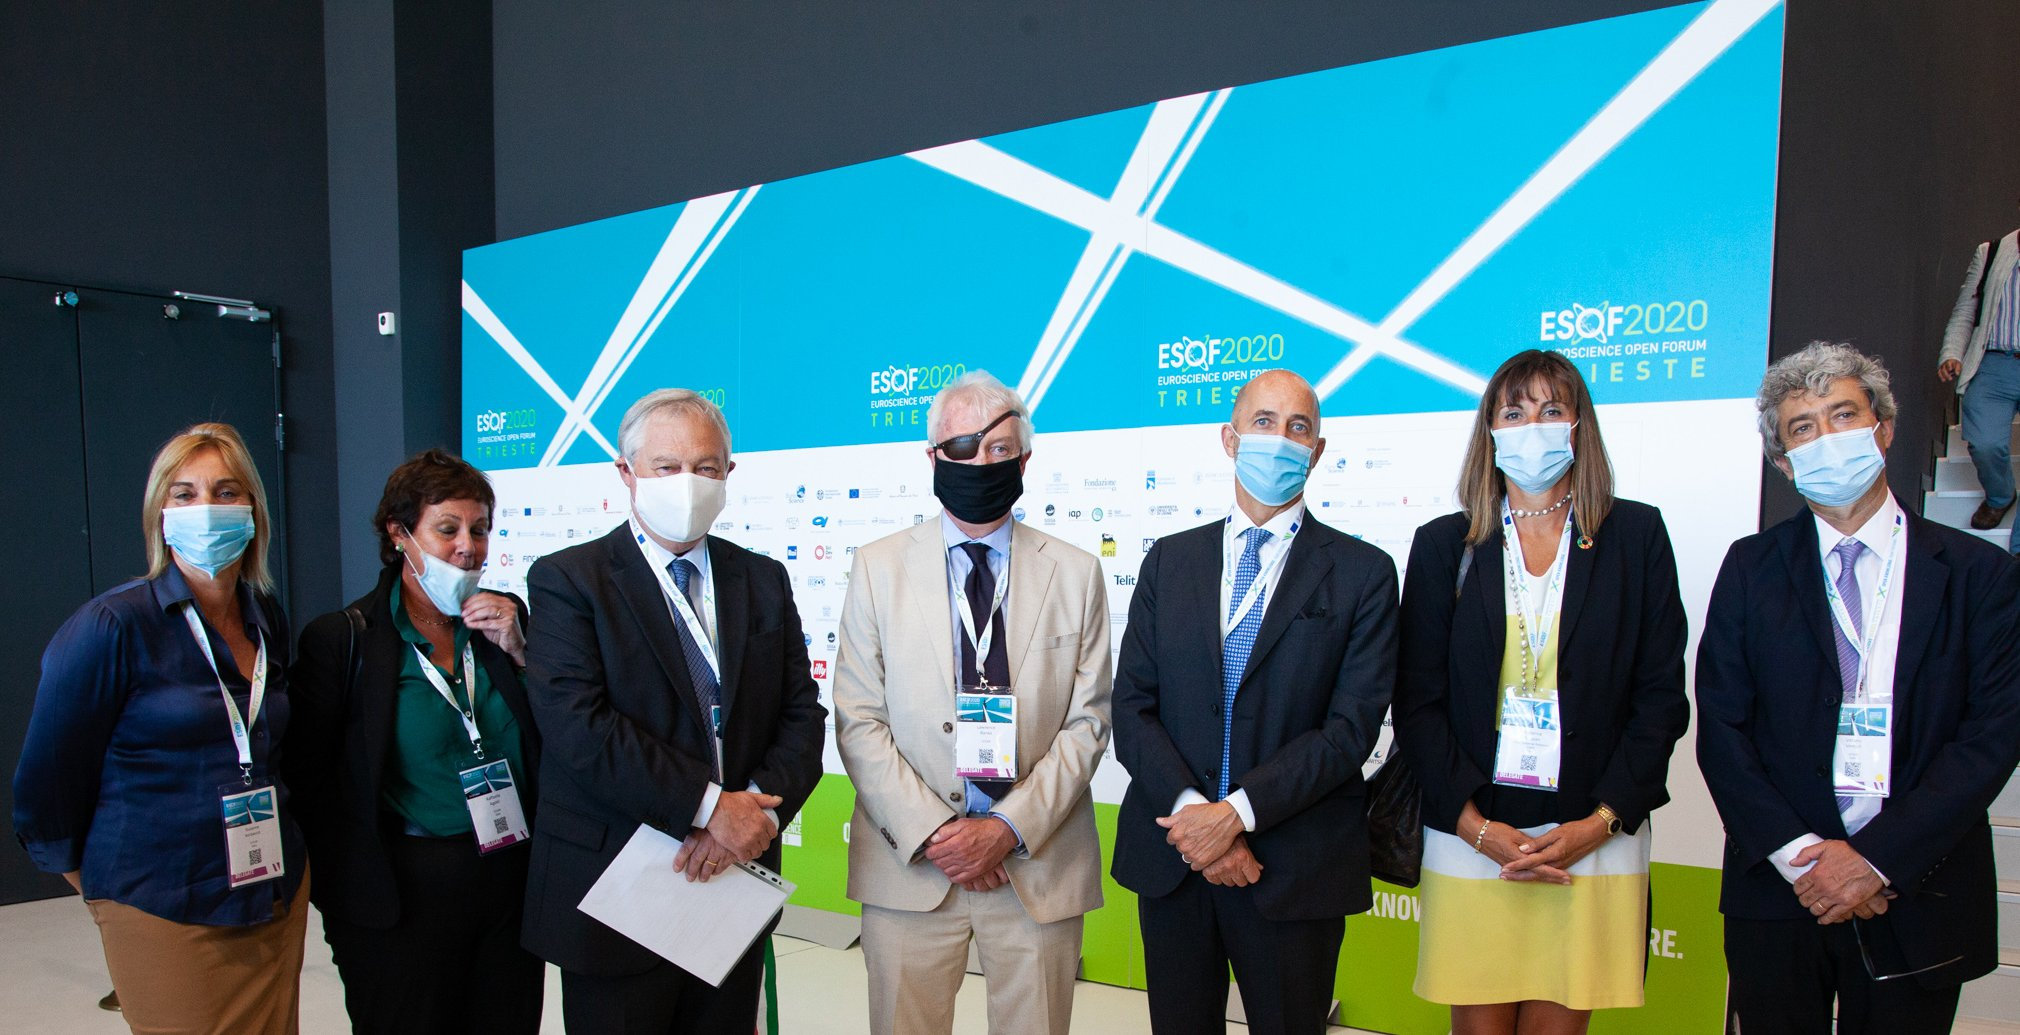 ICGEB for Trieste, European City of Science 2020